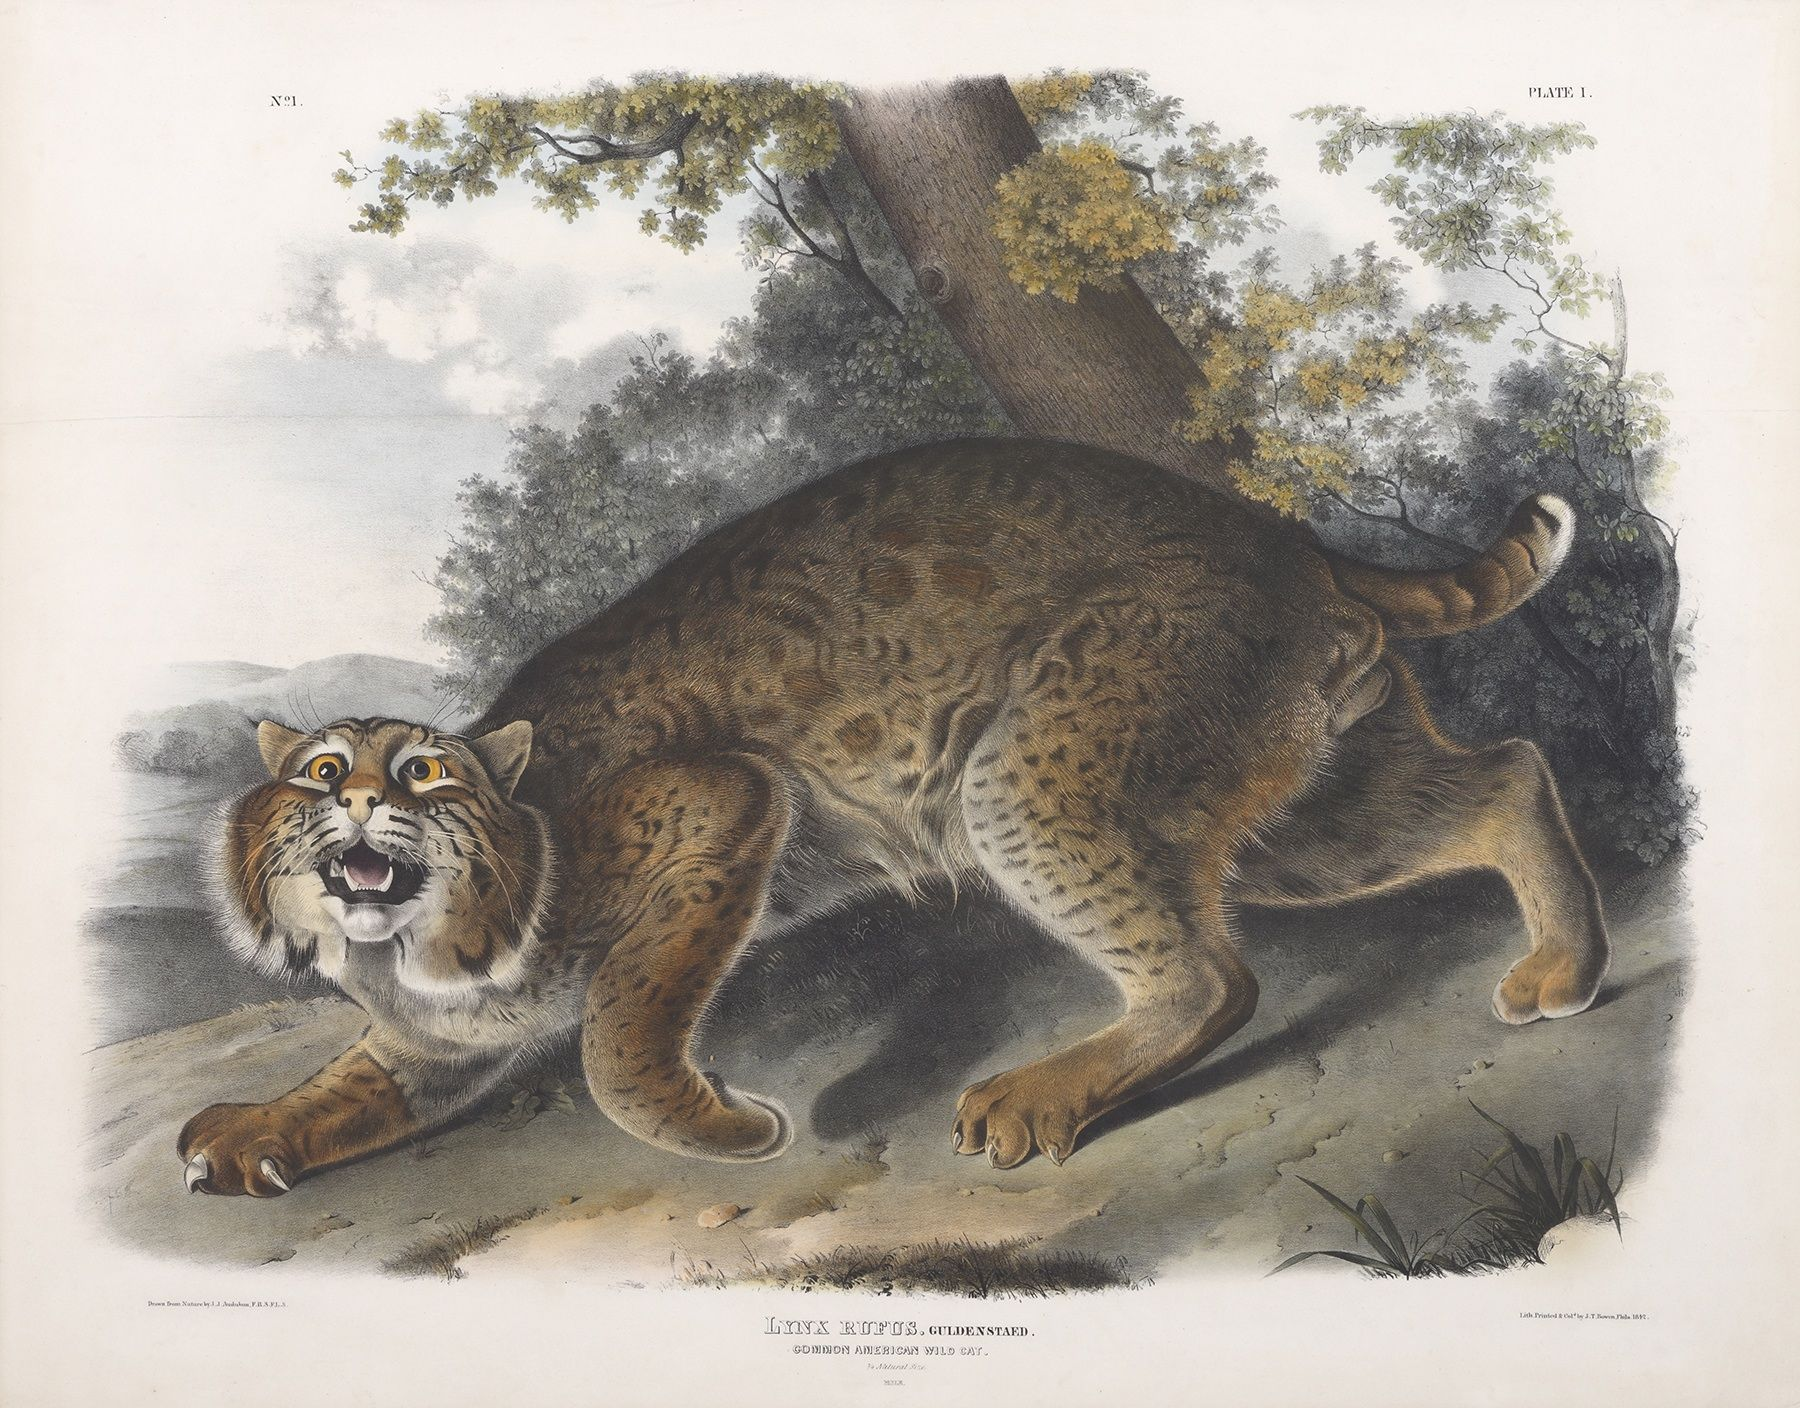 From Birds to Beasts: Audubon's Last Great Adventure. On view through August 30, 2015. Currier Museum of Art, Manchester, New Hampshire www.currier.org  PHOTO CAPTION: John James Audubon, Common American Wild Cat (Bobcat), 1845-48, Hand-colored lithograph. Courtesy of New Hampshire Audubon, Concord, New Hampshire.